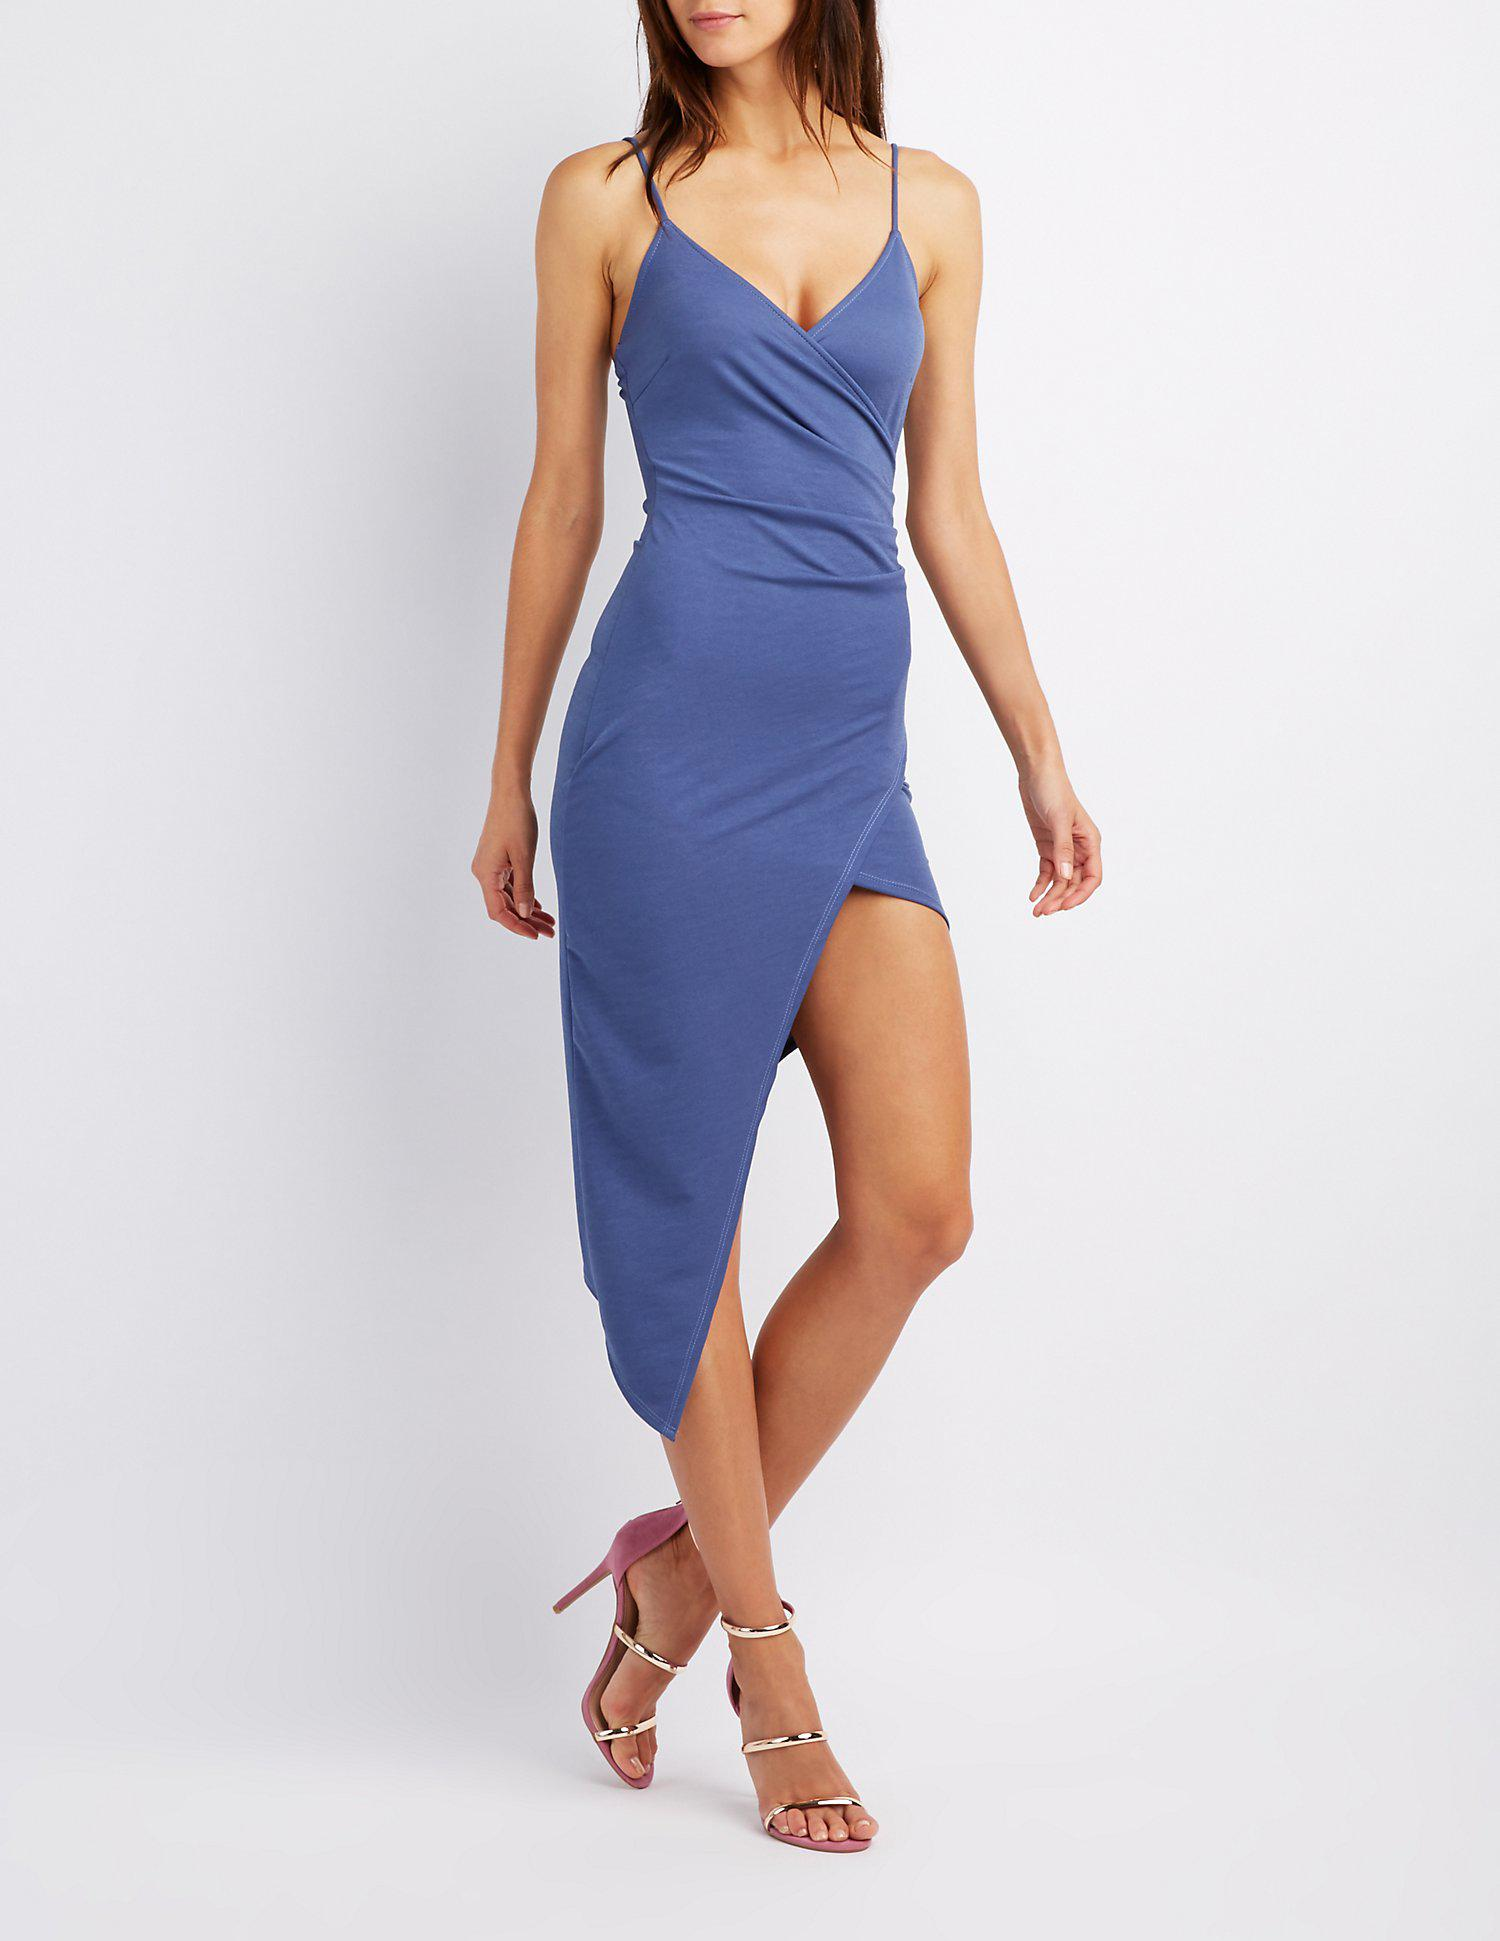 2037d0b9a1a Gallery. Previously sold at  Charlotte Russe · Women s Bodycon Dresses